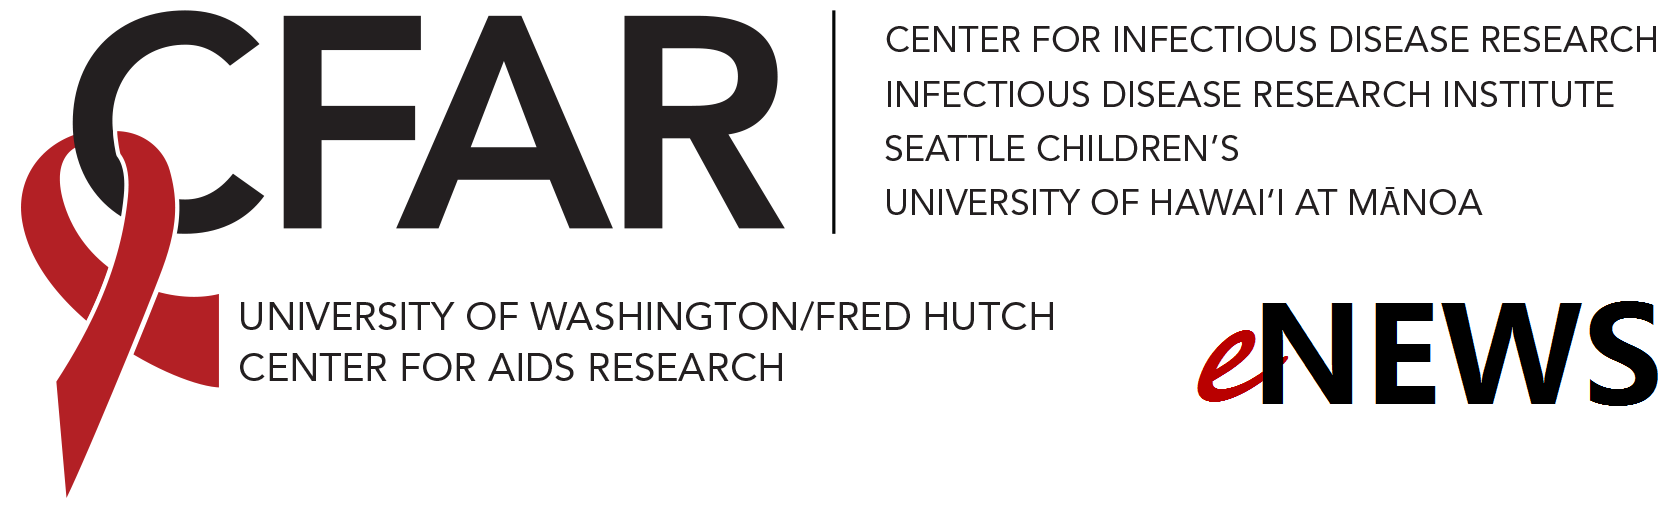 CFAR logo.rev 6.13.17 eNews_0.png